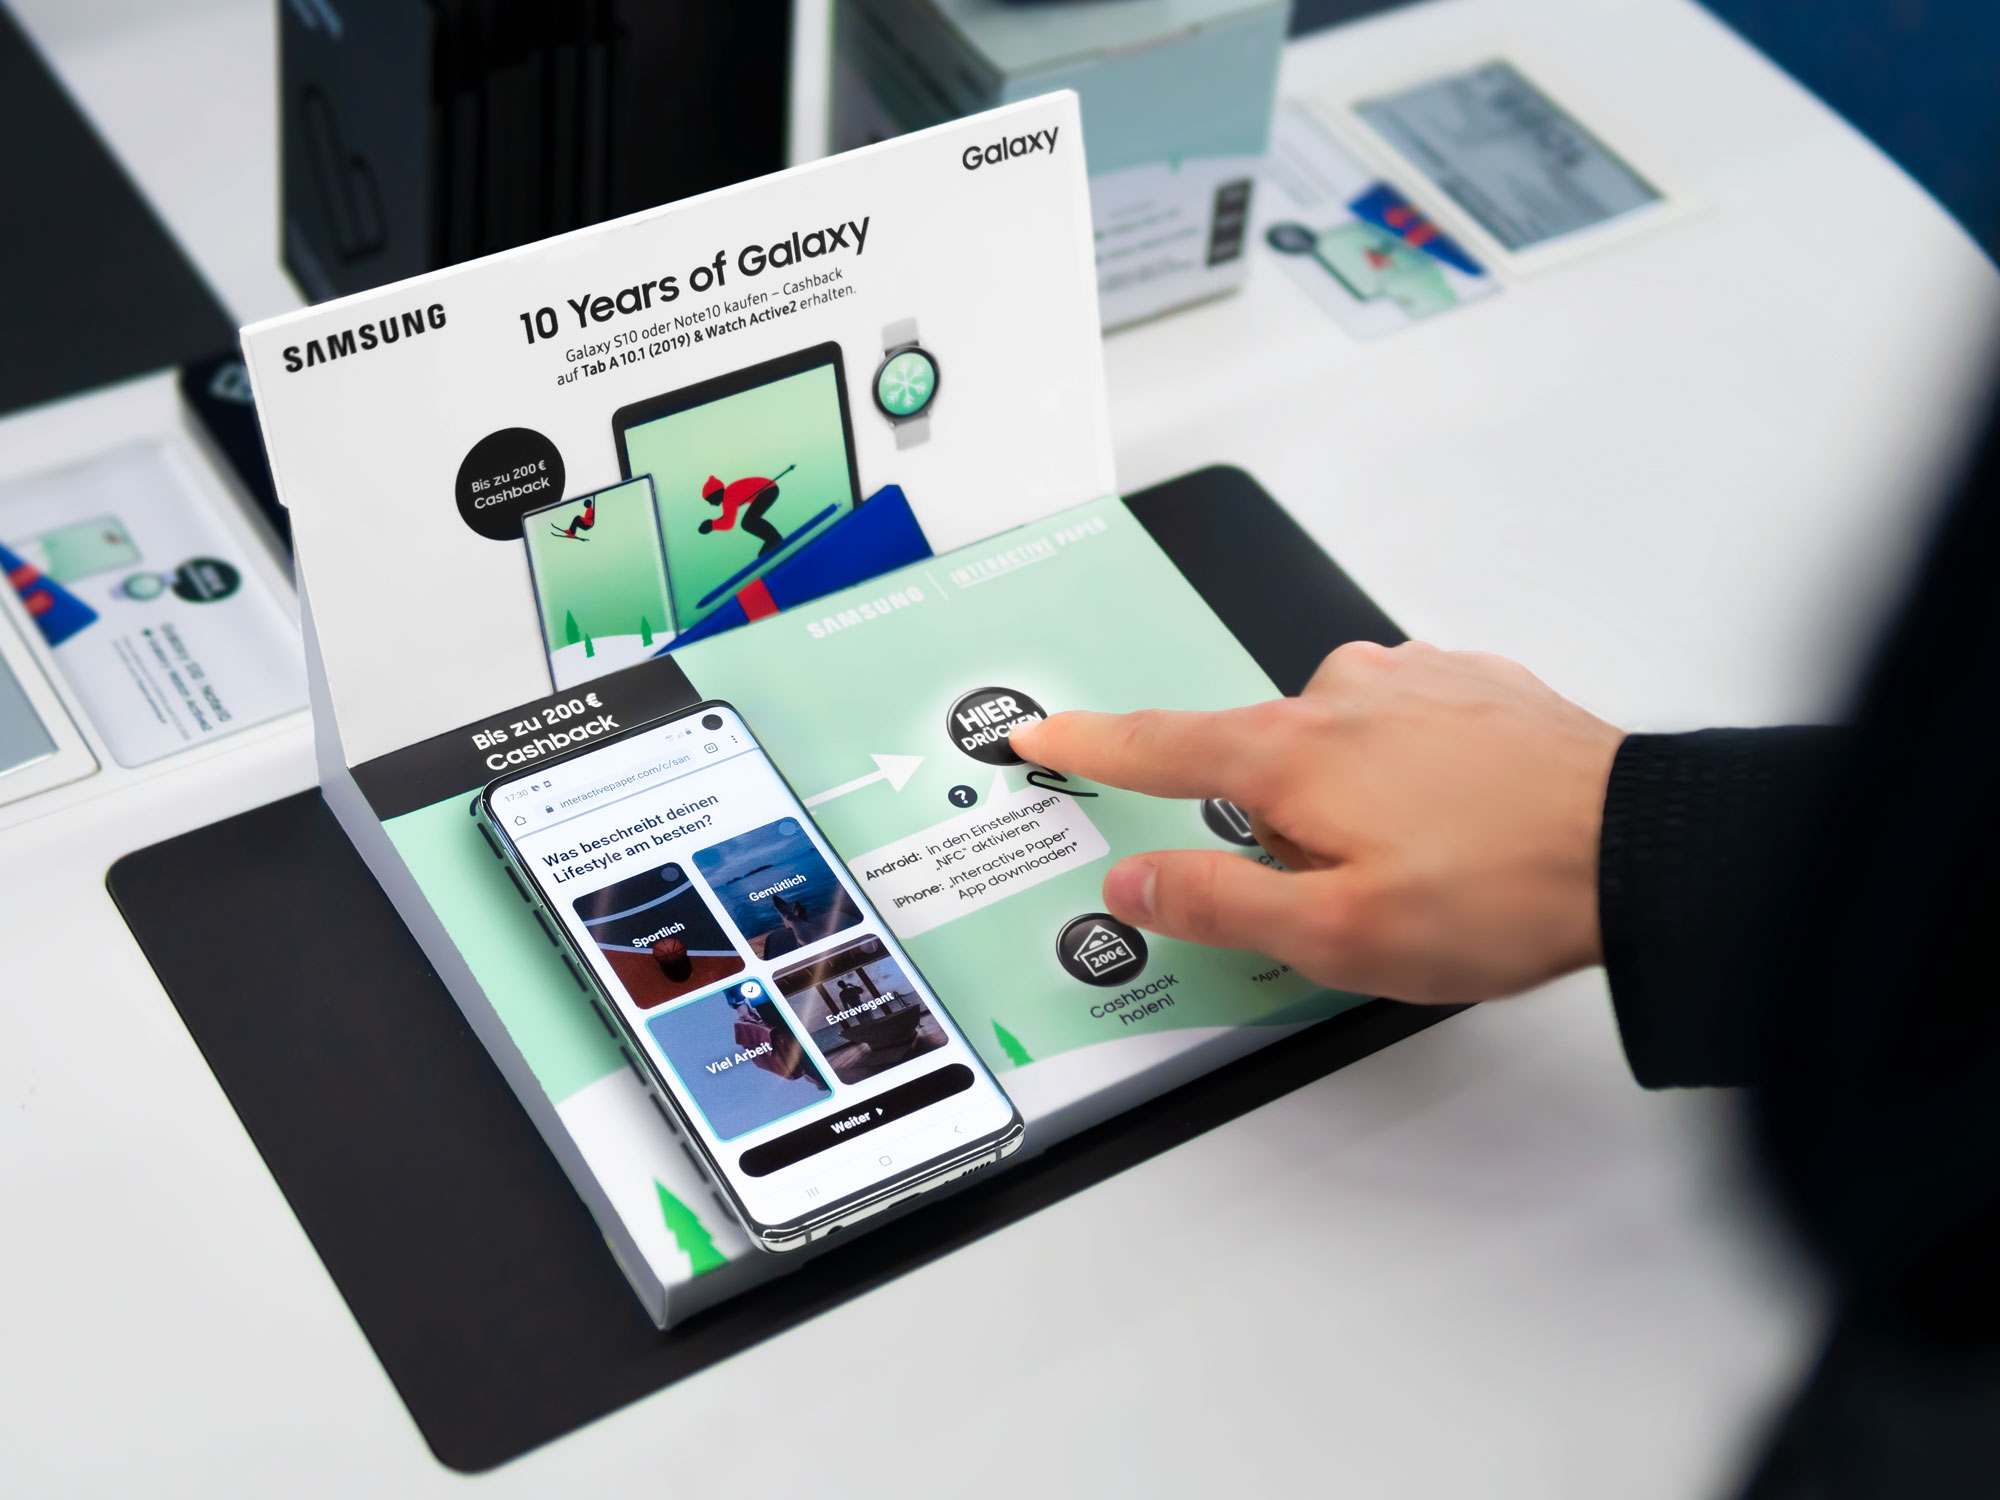 Samsung's Interactive Display in use